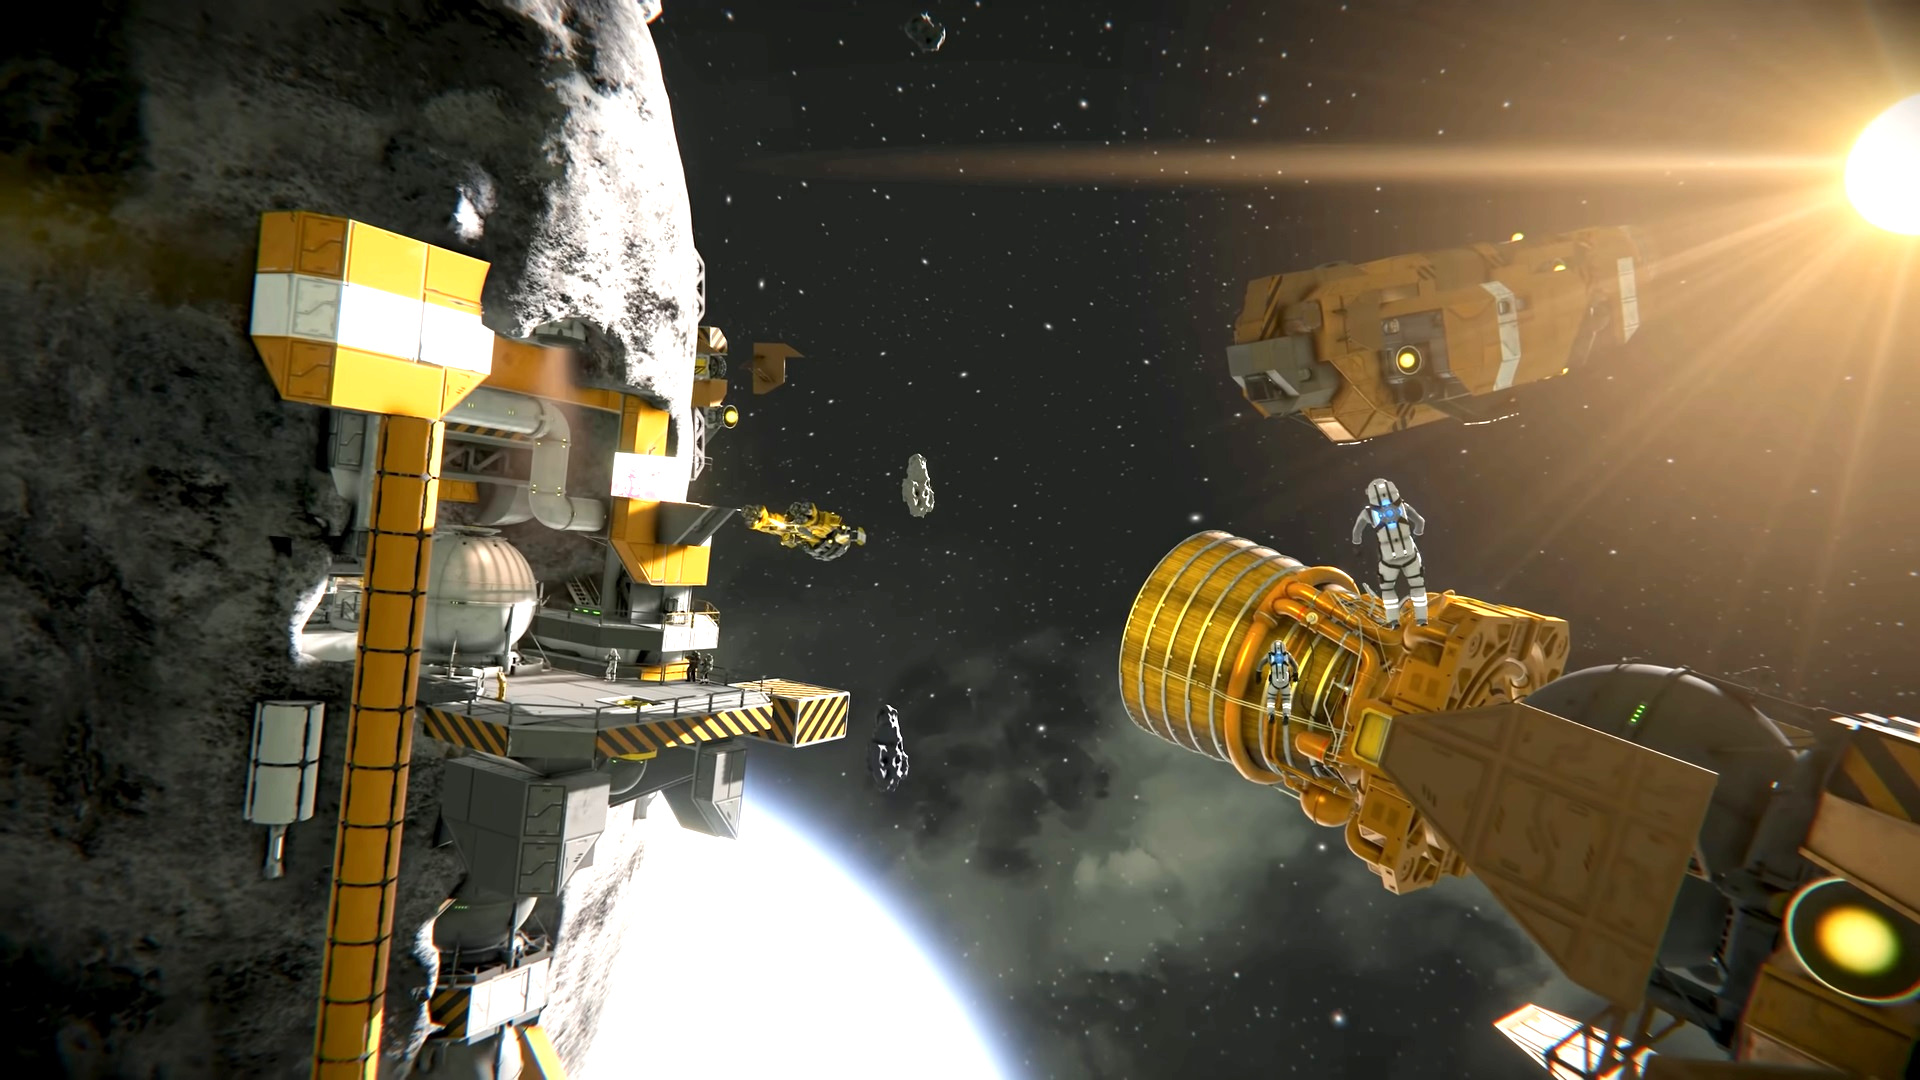 Space simulation game Space Engineers overhauls industry with over 100 new parts